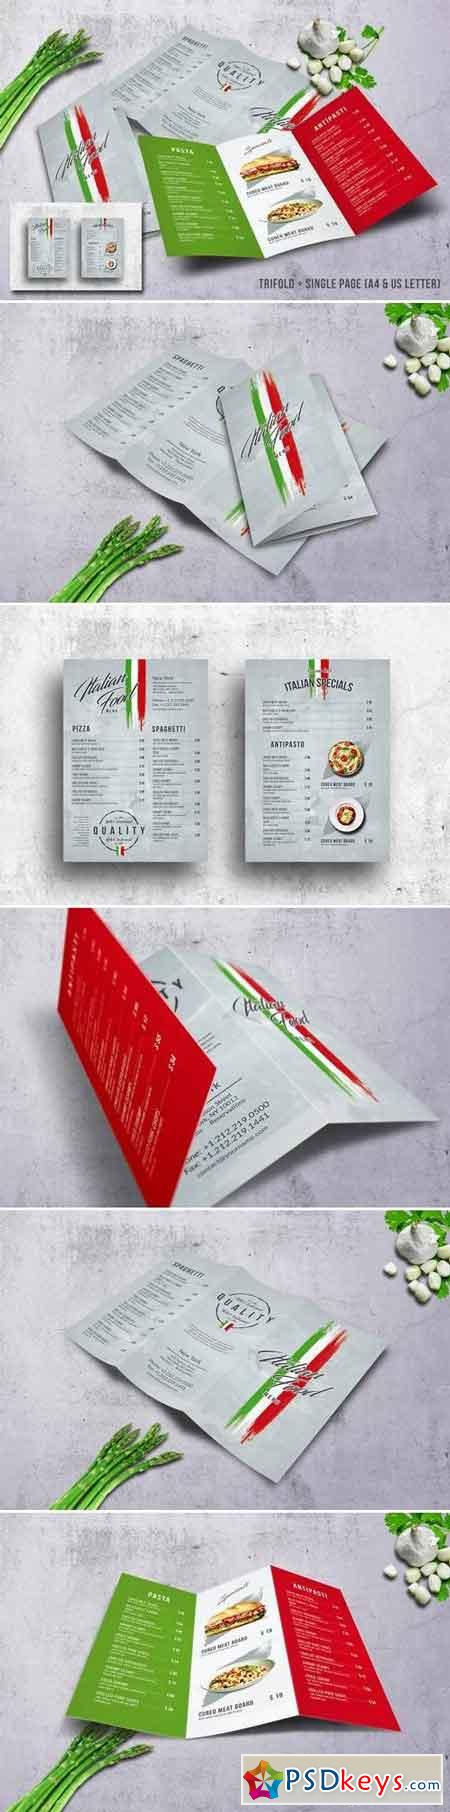 Italian Food Menu Bundle A4 & US Letter